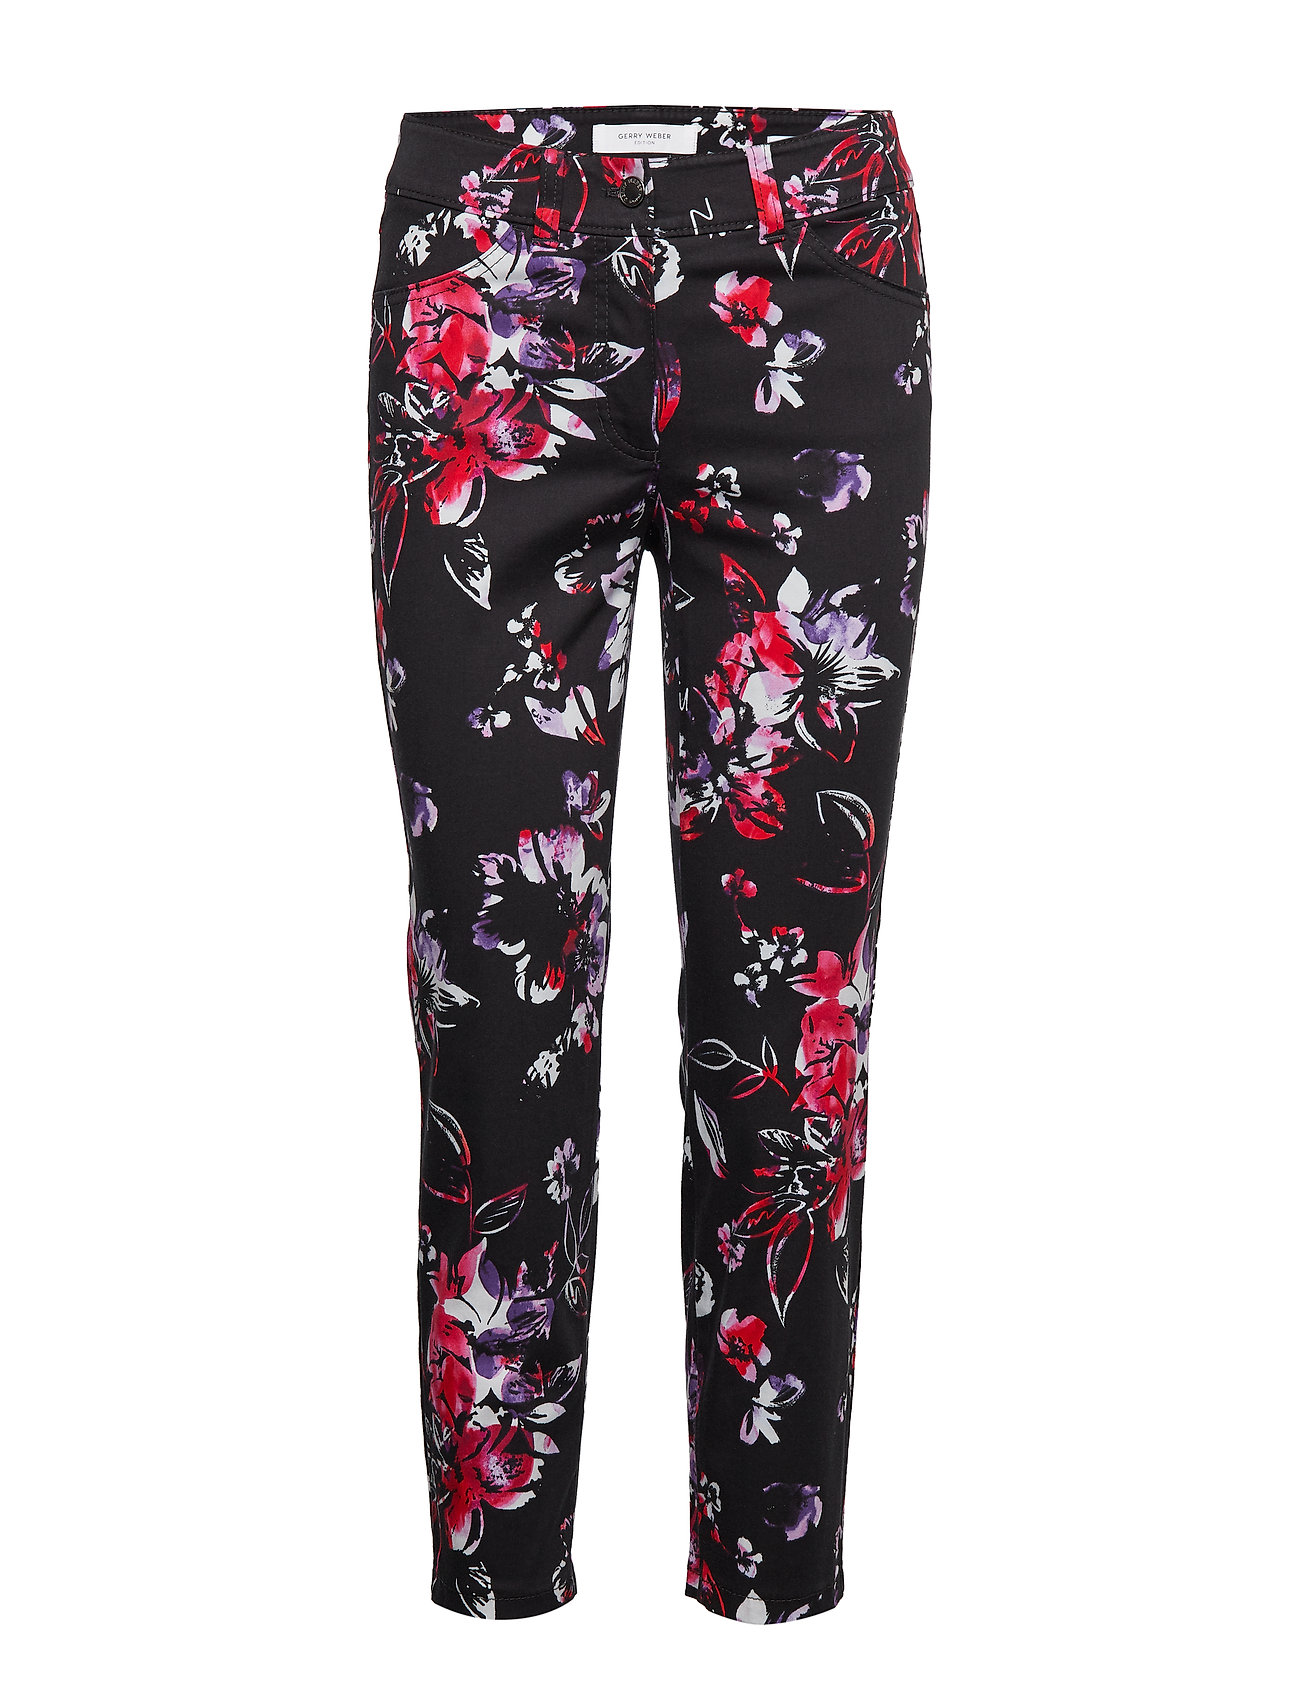 Gerry Weber Edition CROP TROUSERS JEANS - LILAC/NAVY/PINK